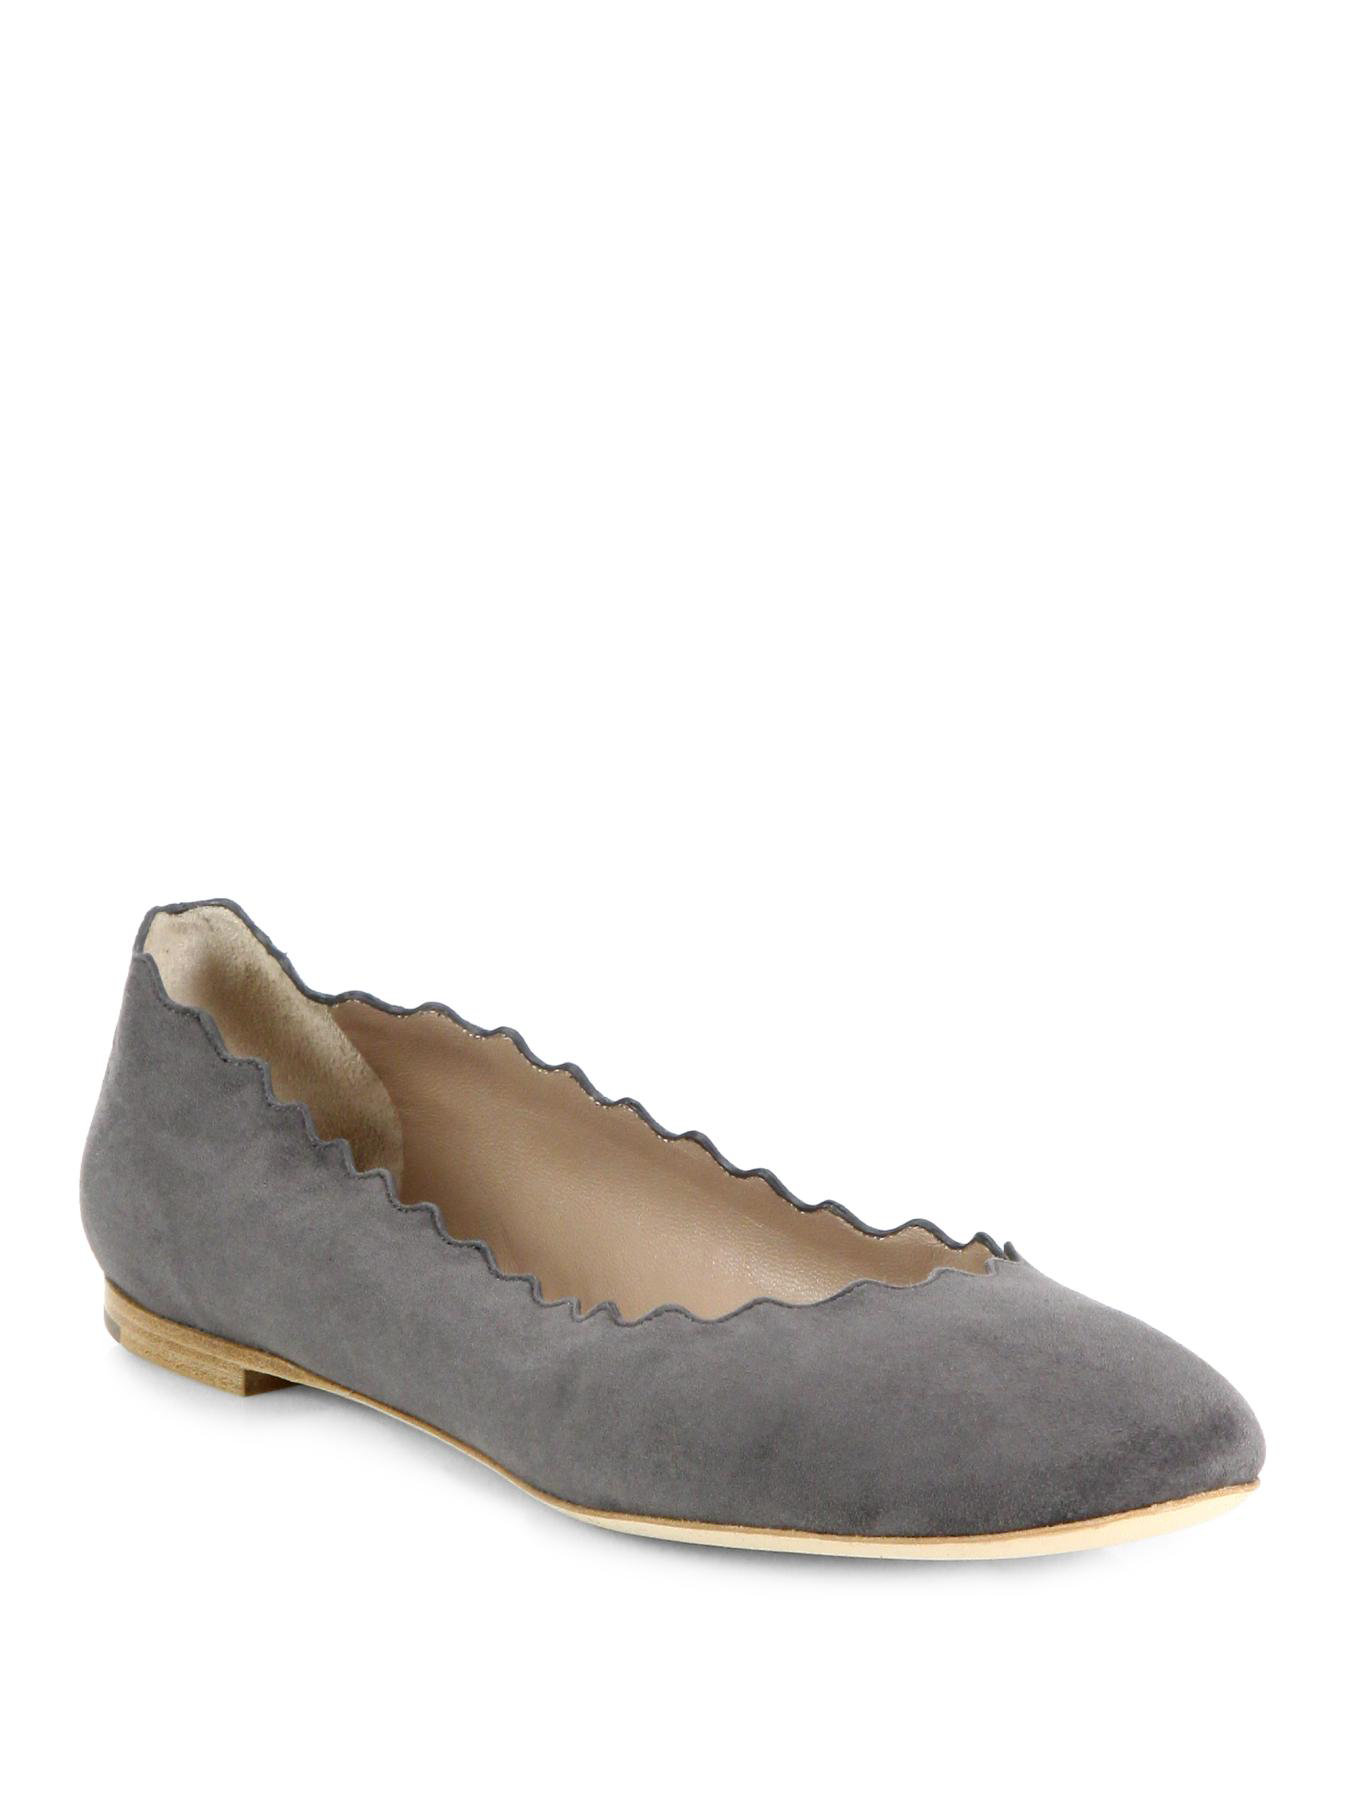 Overstock uses cookies to ensure you get the best experience on our site. If you continue on our site, you consent to the use of such cookies. Journee Collection Women's 'Vika' Black/Blue/Grey Rubber Round Toe Bow Ballet Flats. 25 Reviews. SALE ends in 1 day. More Options. Quick View. Sale $ 84 - .